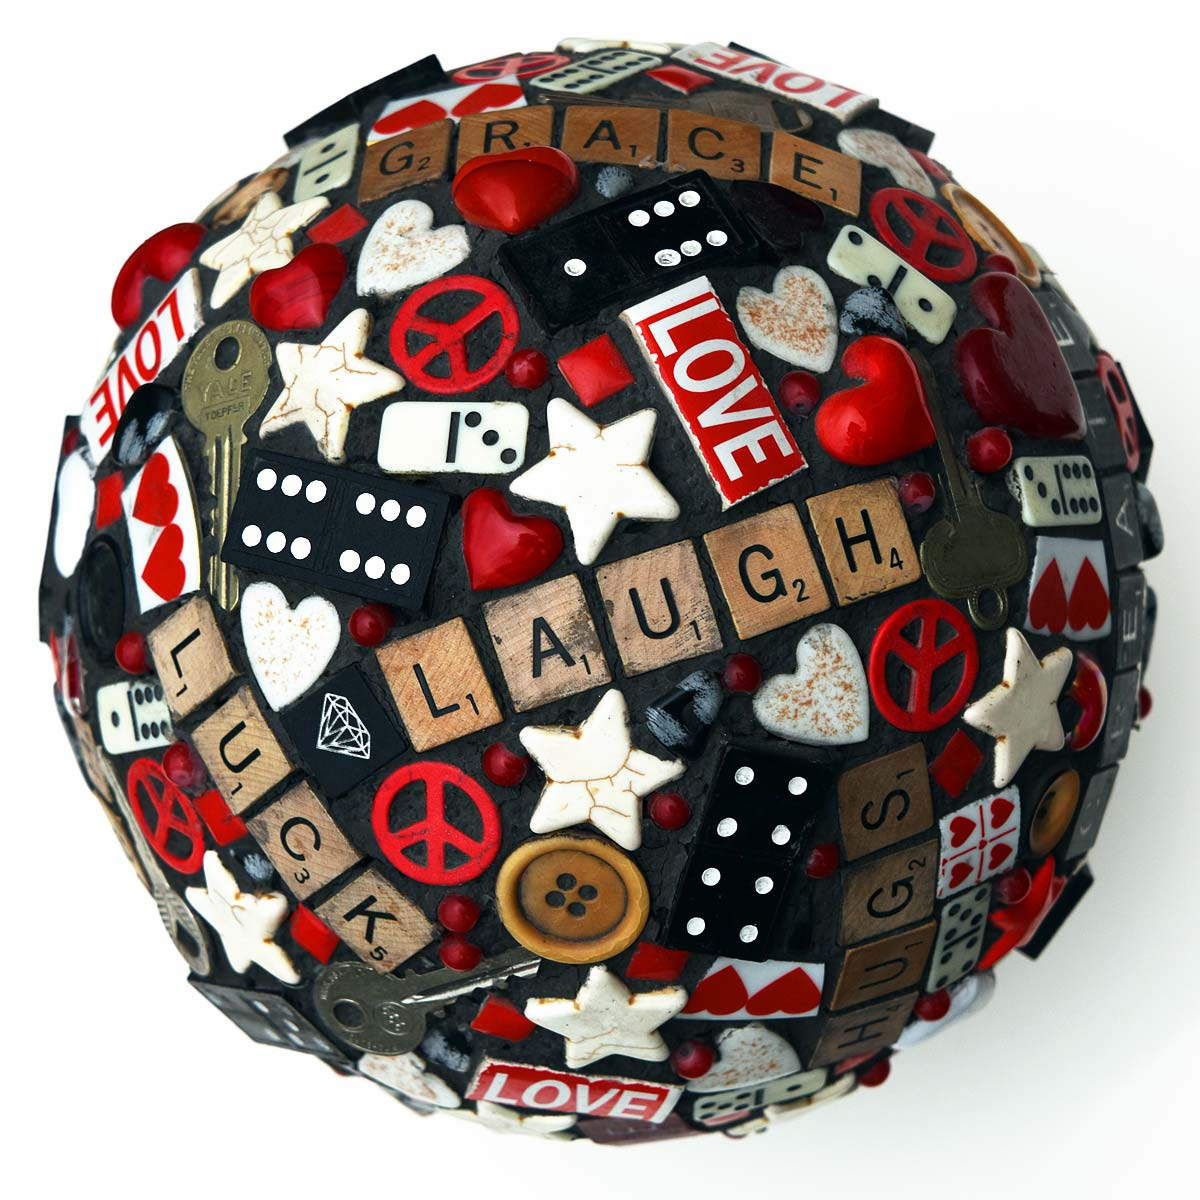 Found object mosaic bowling ball